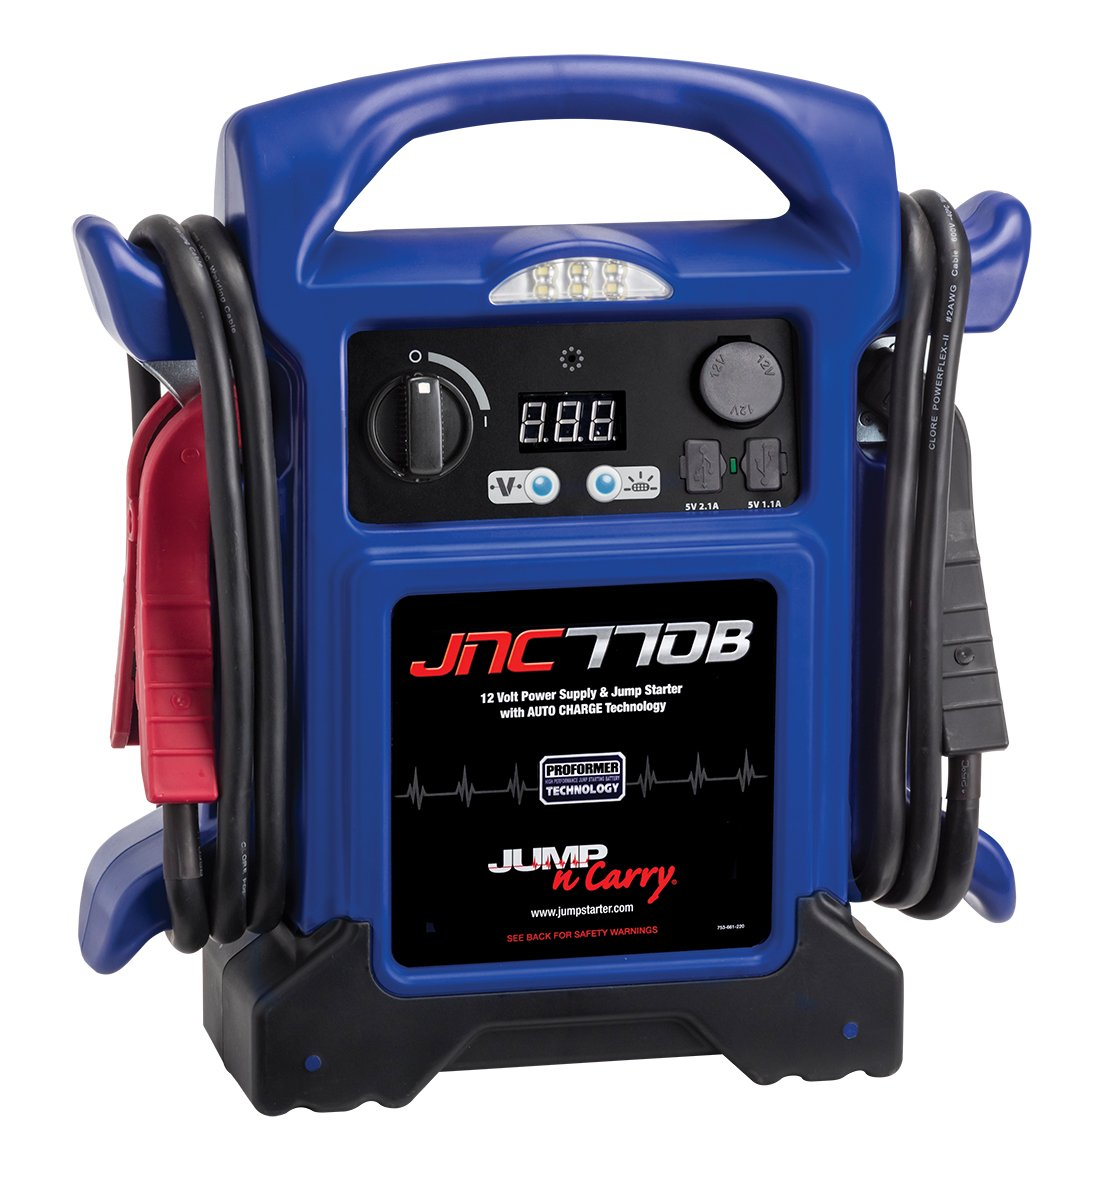 Clore Automotive Blue Jnc770b N Carry Premium Jump Auto Off Power Source Starter 1700 Peak Amp 12 Volt